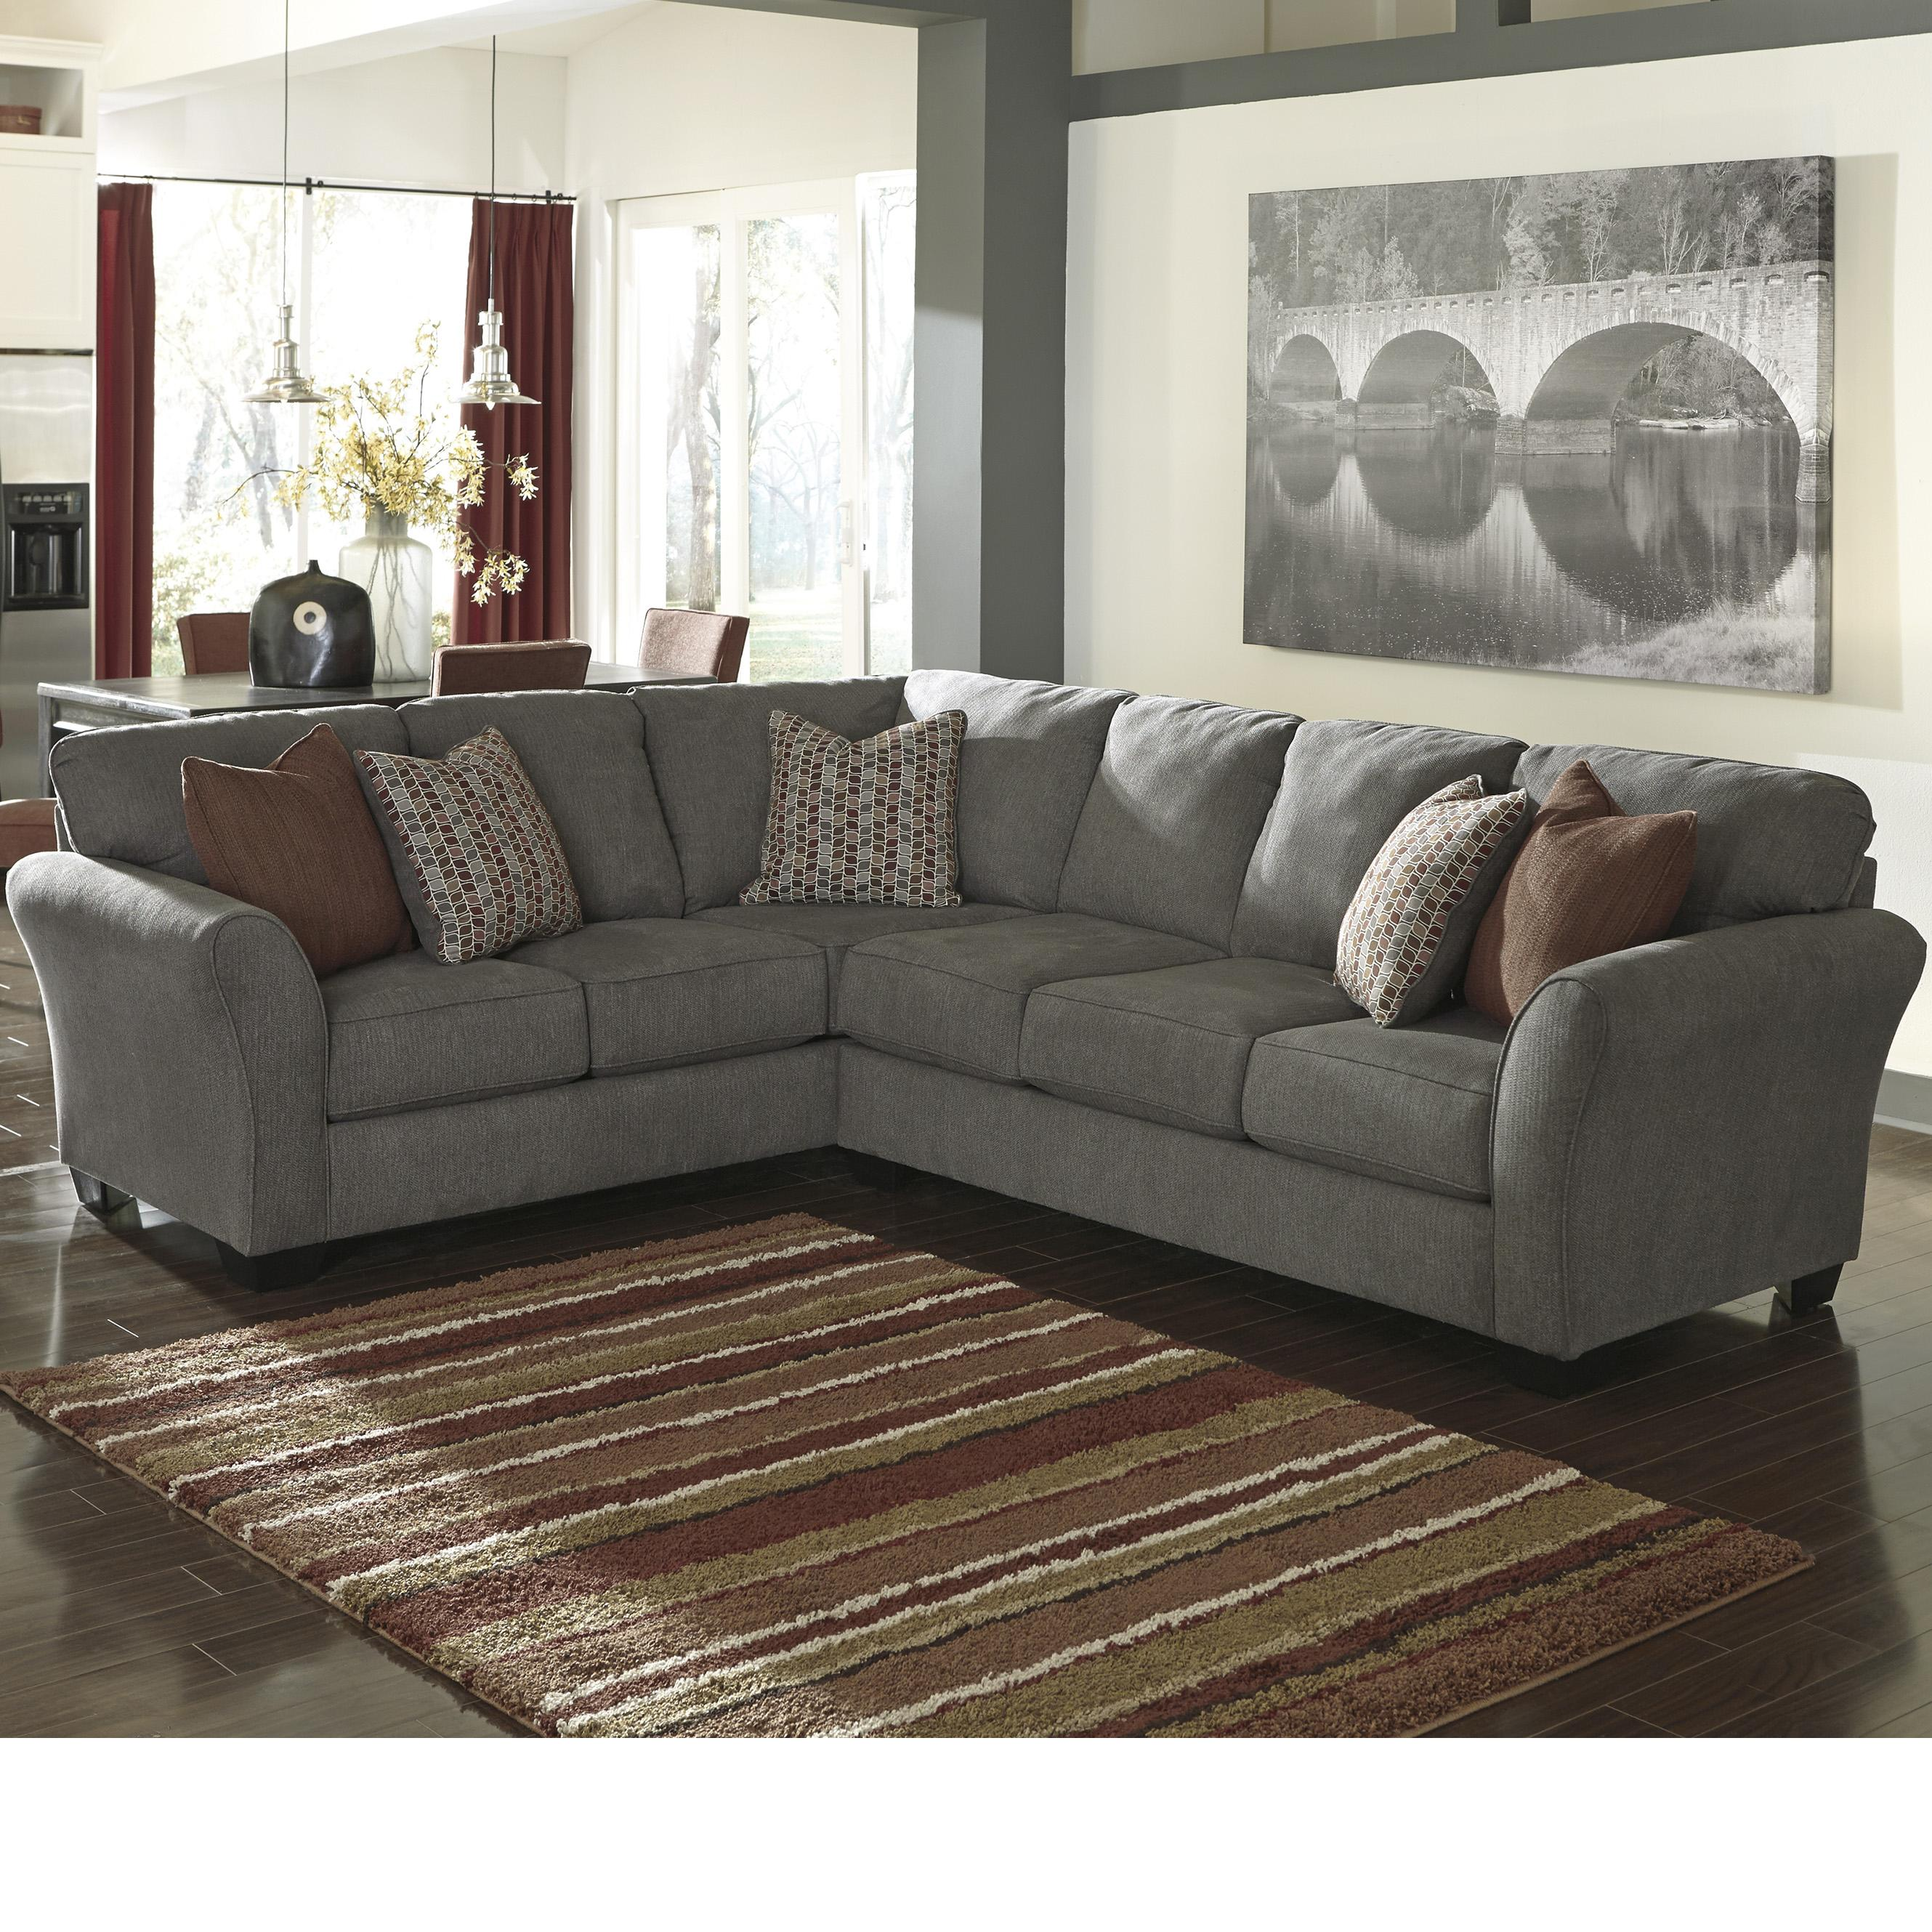 Benchcraft Doralin - Steel Contemporary Sectional - Item Number: 8680048+8680067